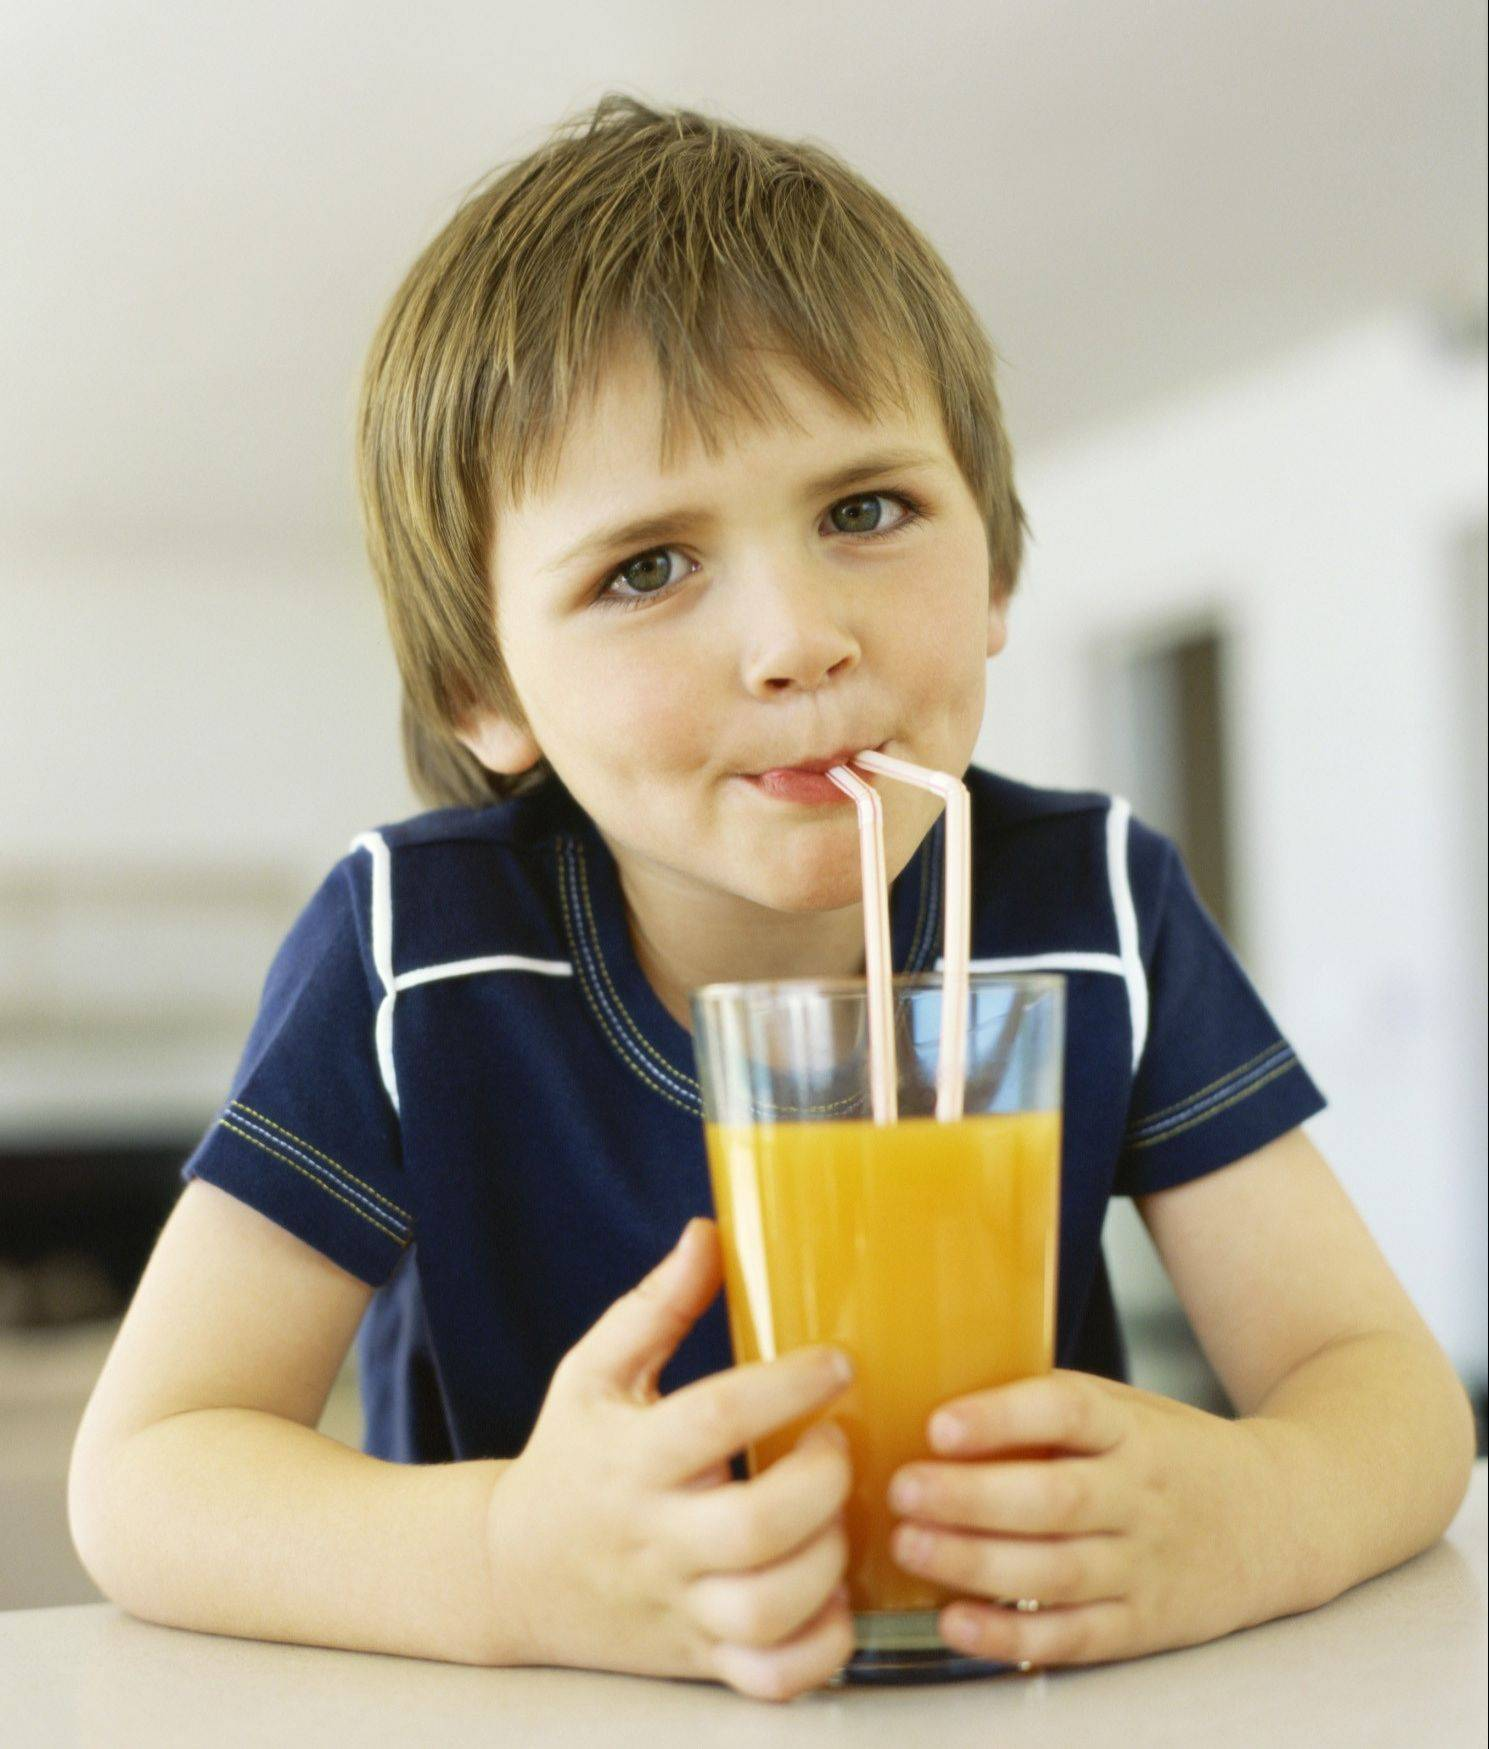 Parents should be wary of having their children drink too much juice, which comes with lots of calories.